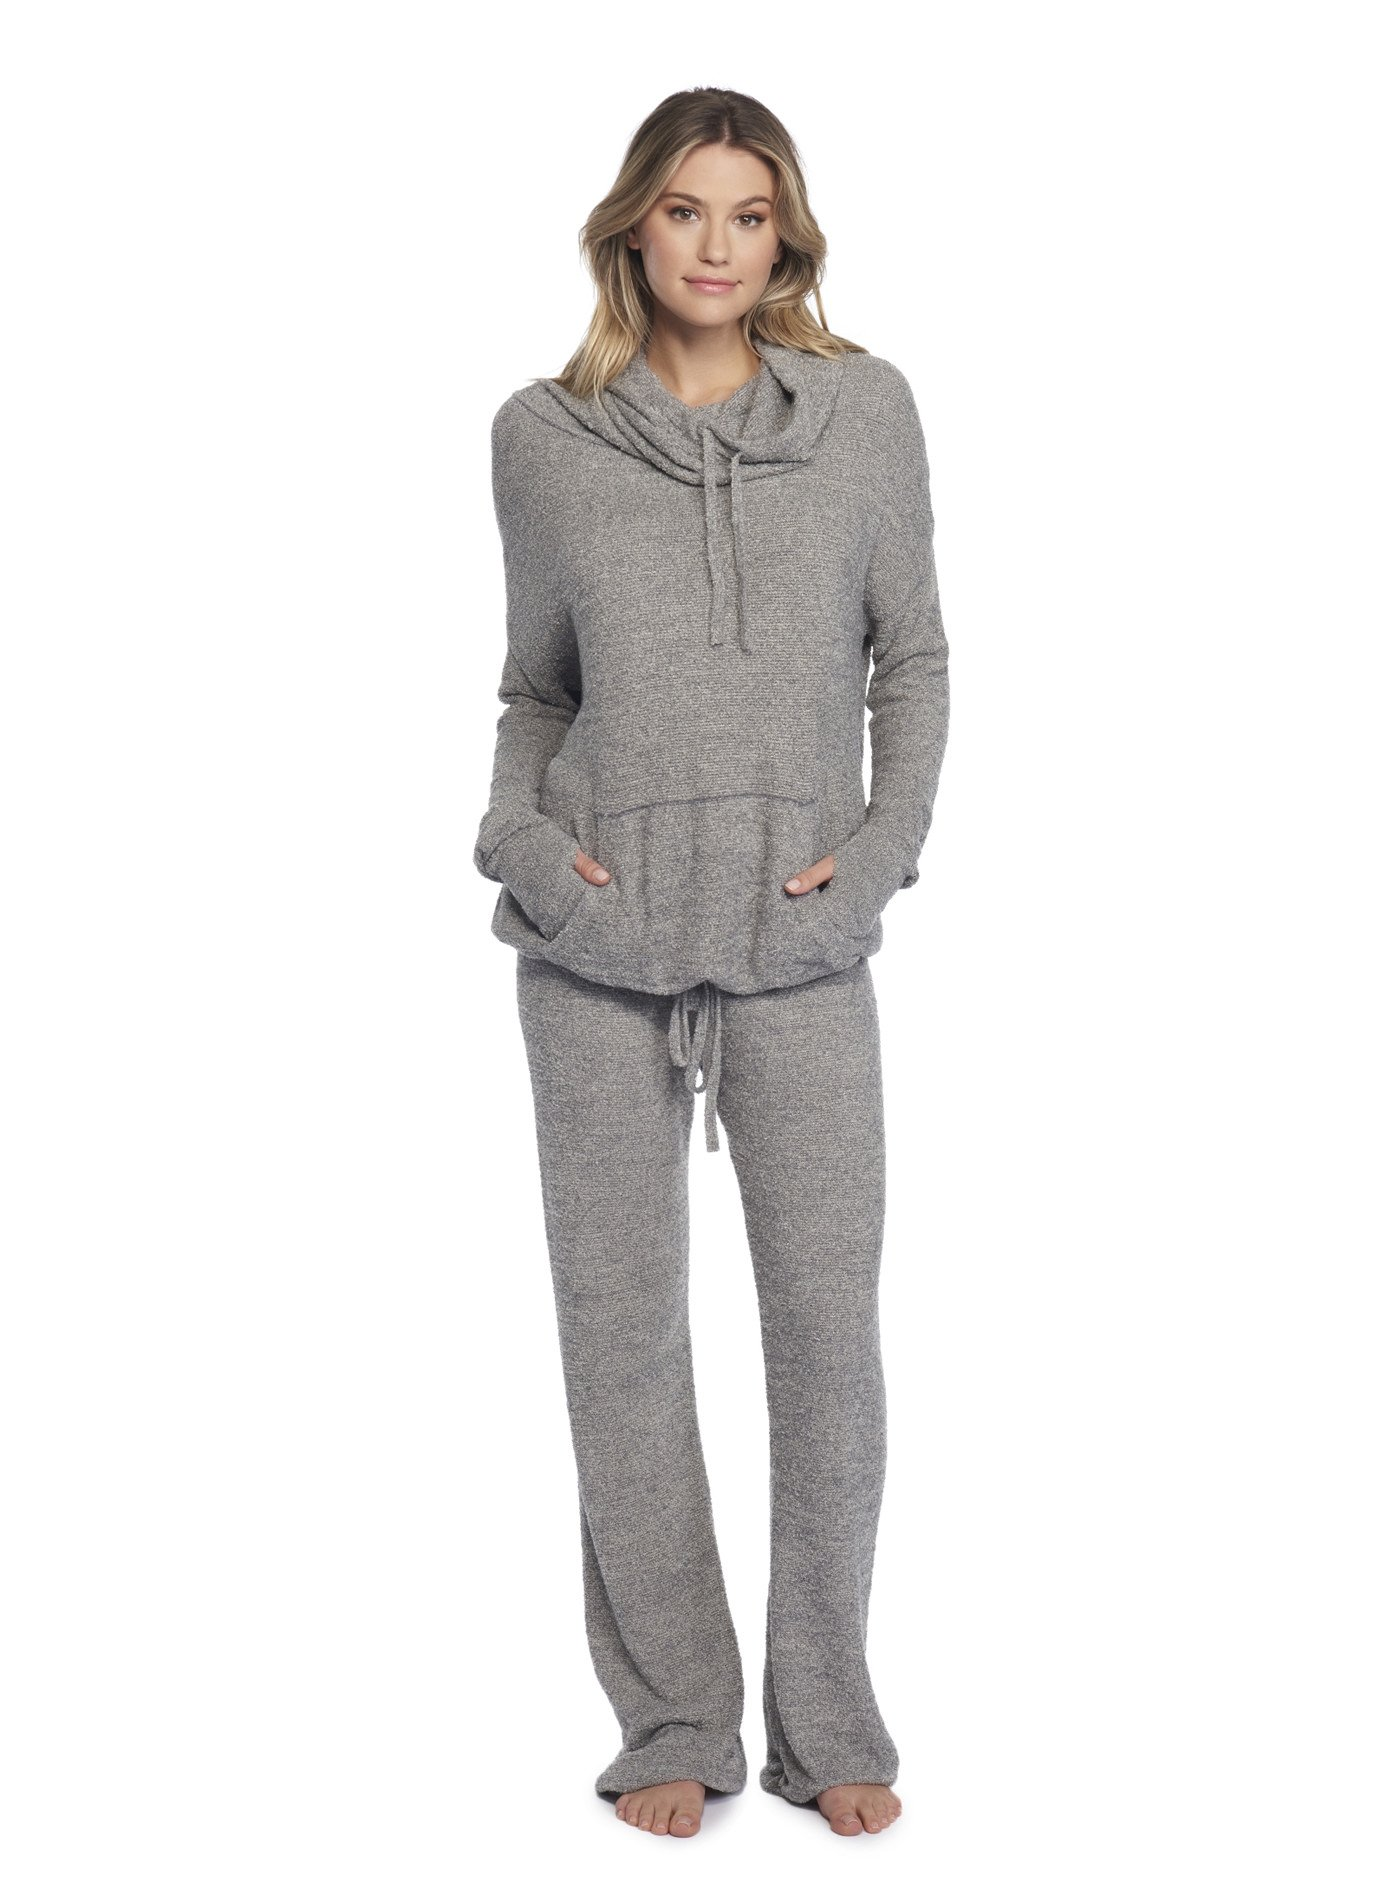 Barefoot Dreams CozyChic Lite Pebble Beach Pullover Heathered Graphite/Stone by Barefoot Dreams